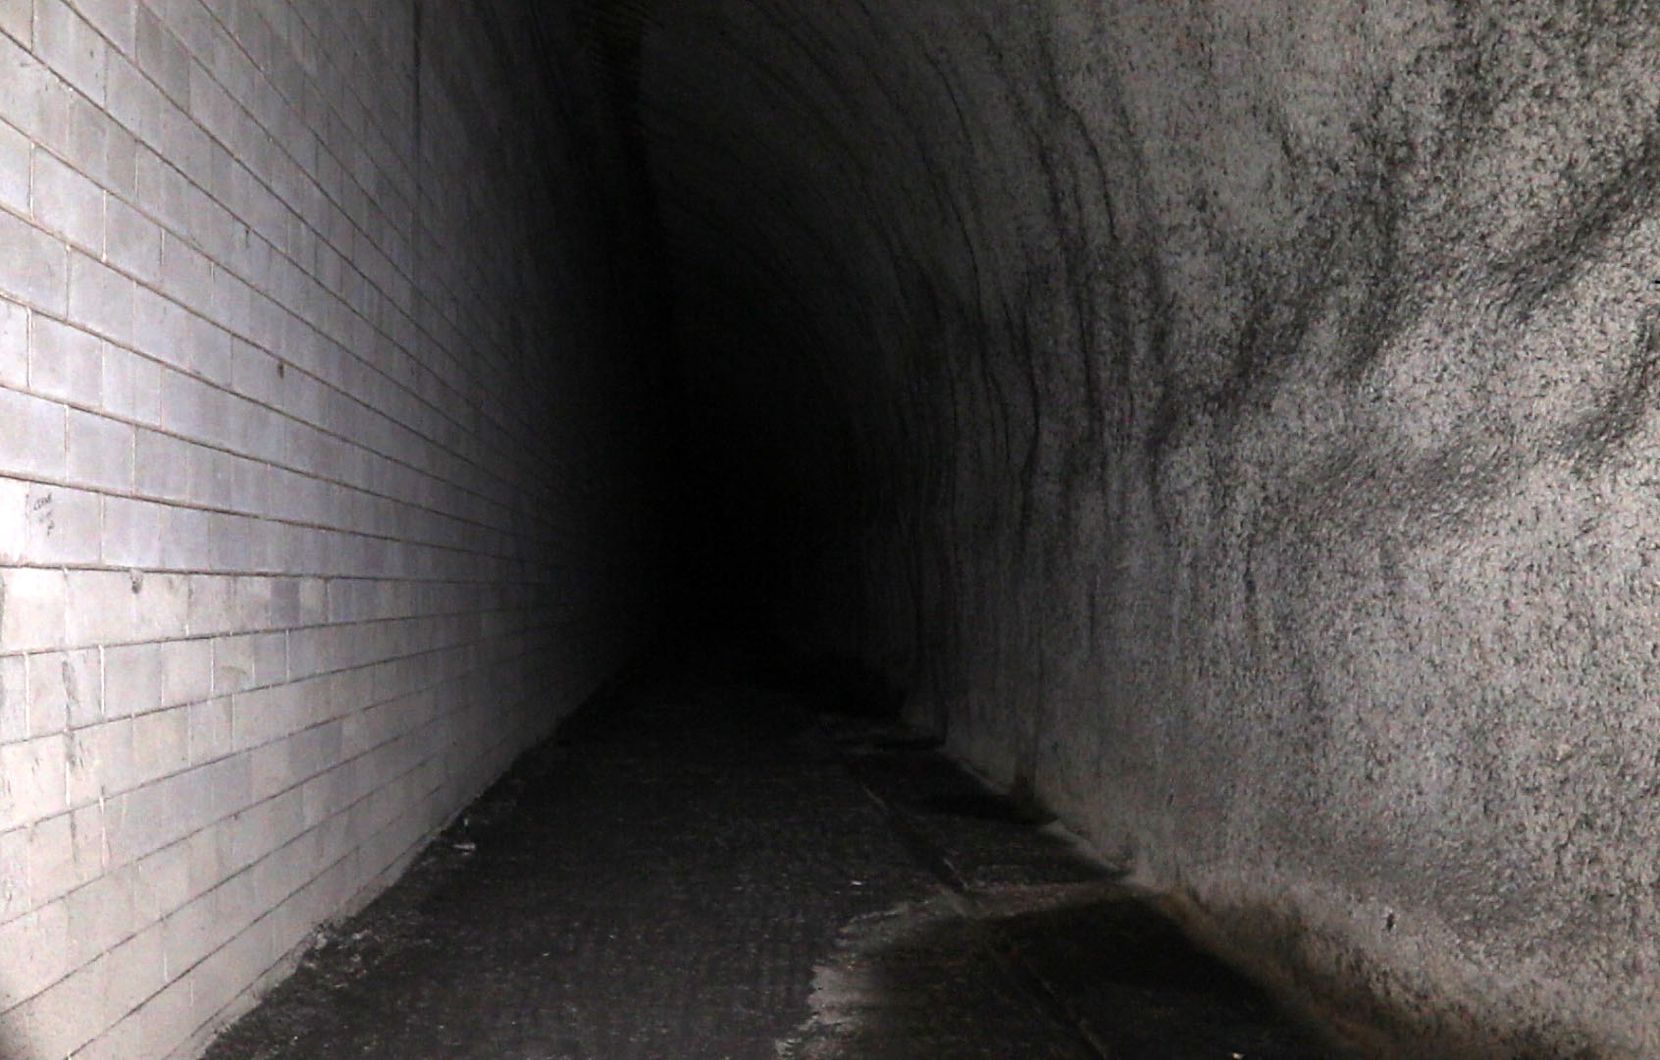 Groundwater seeps into a dark corner of DART's unfinished Knox Street rail station 80 feet below Central Expresway.